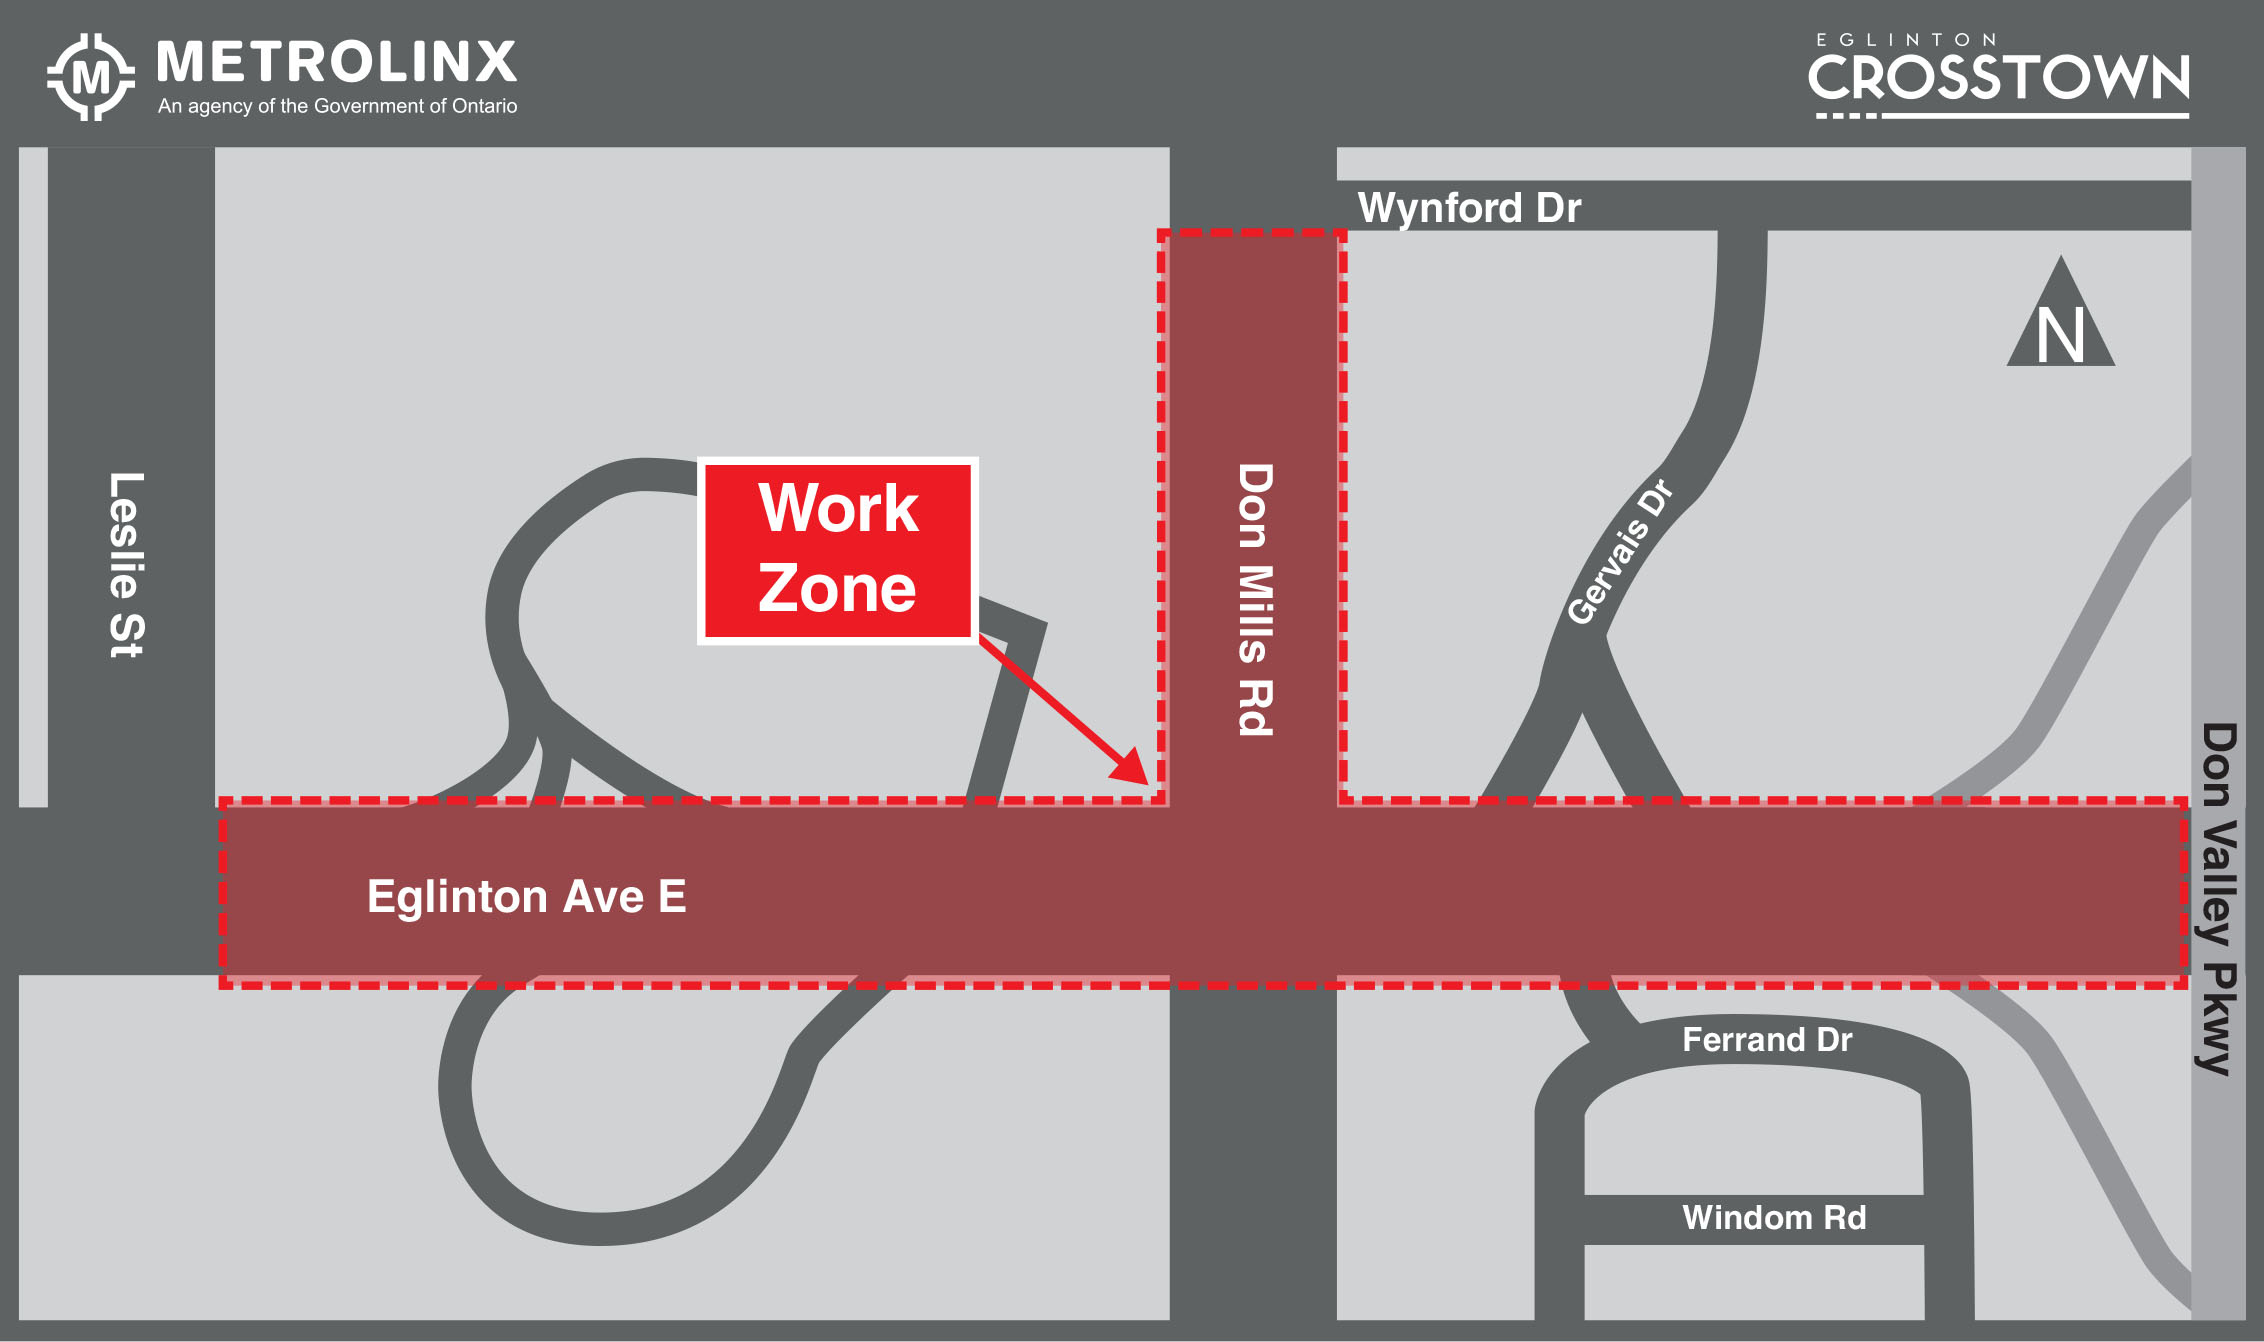 Map showing work zone along Eglinton Avenue East from Leslie Street to the Don Valley Parkway, and on Don Mill Road from Eglinton Avenue East to Wynford Drive.